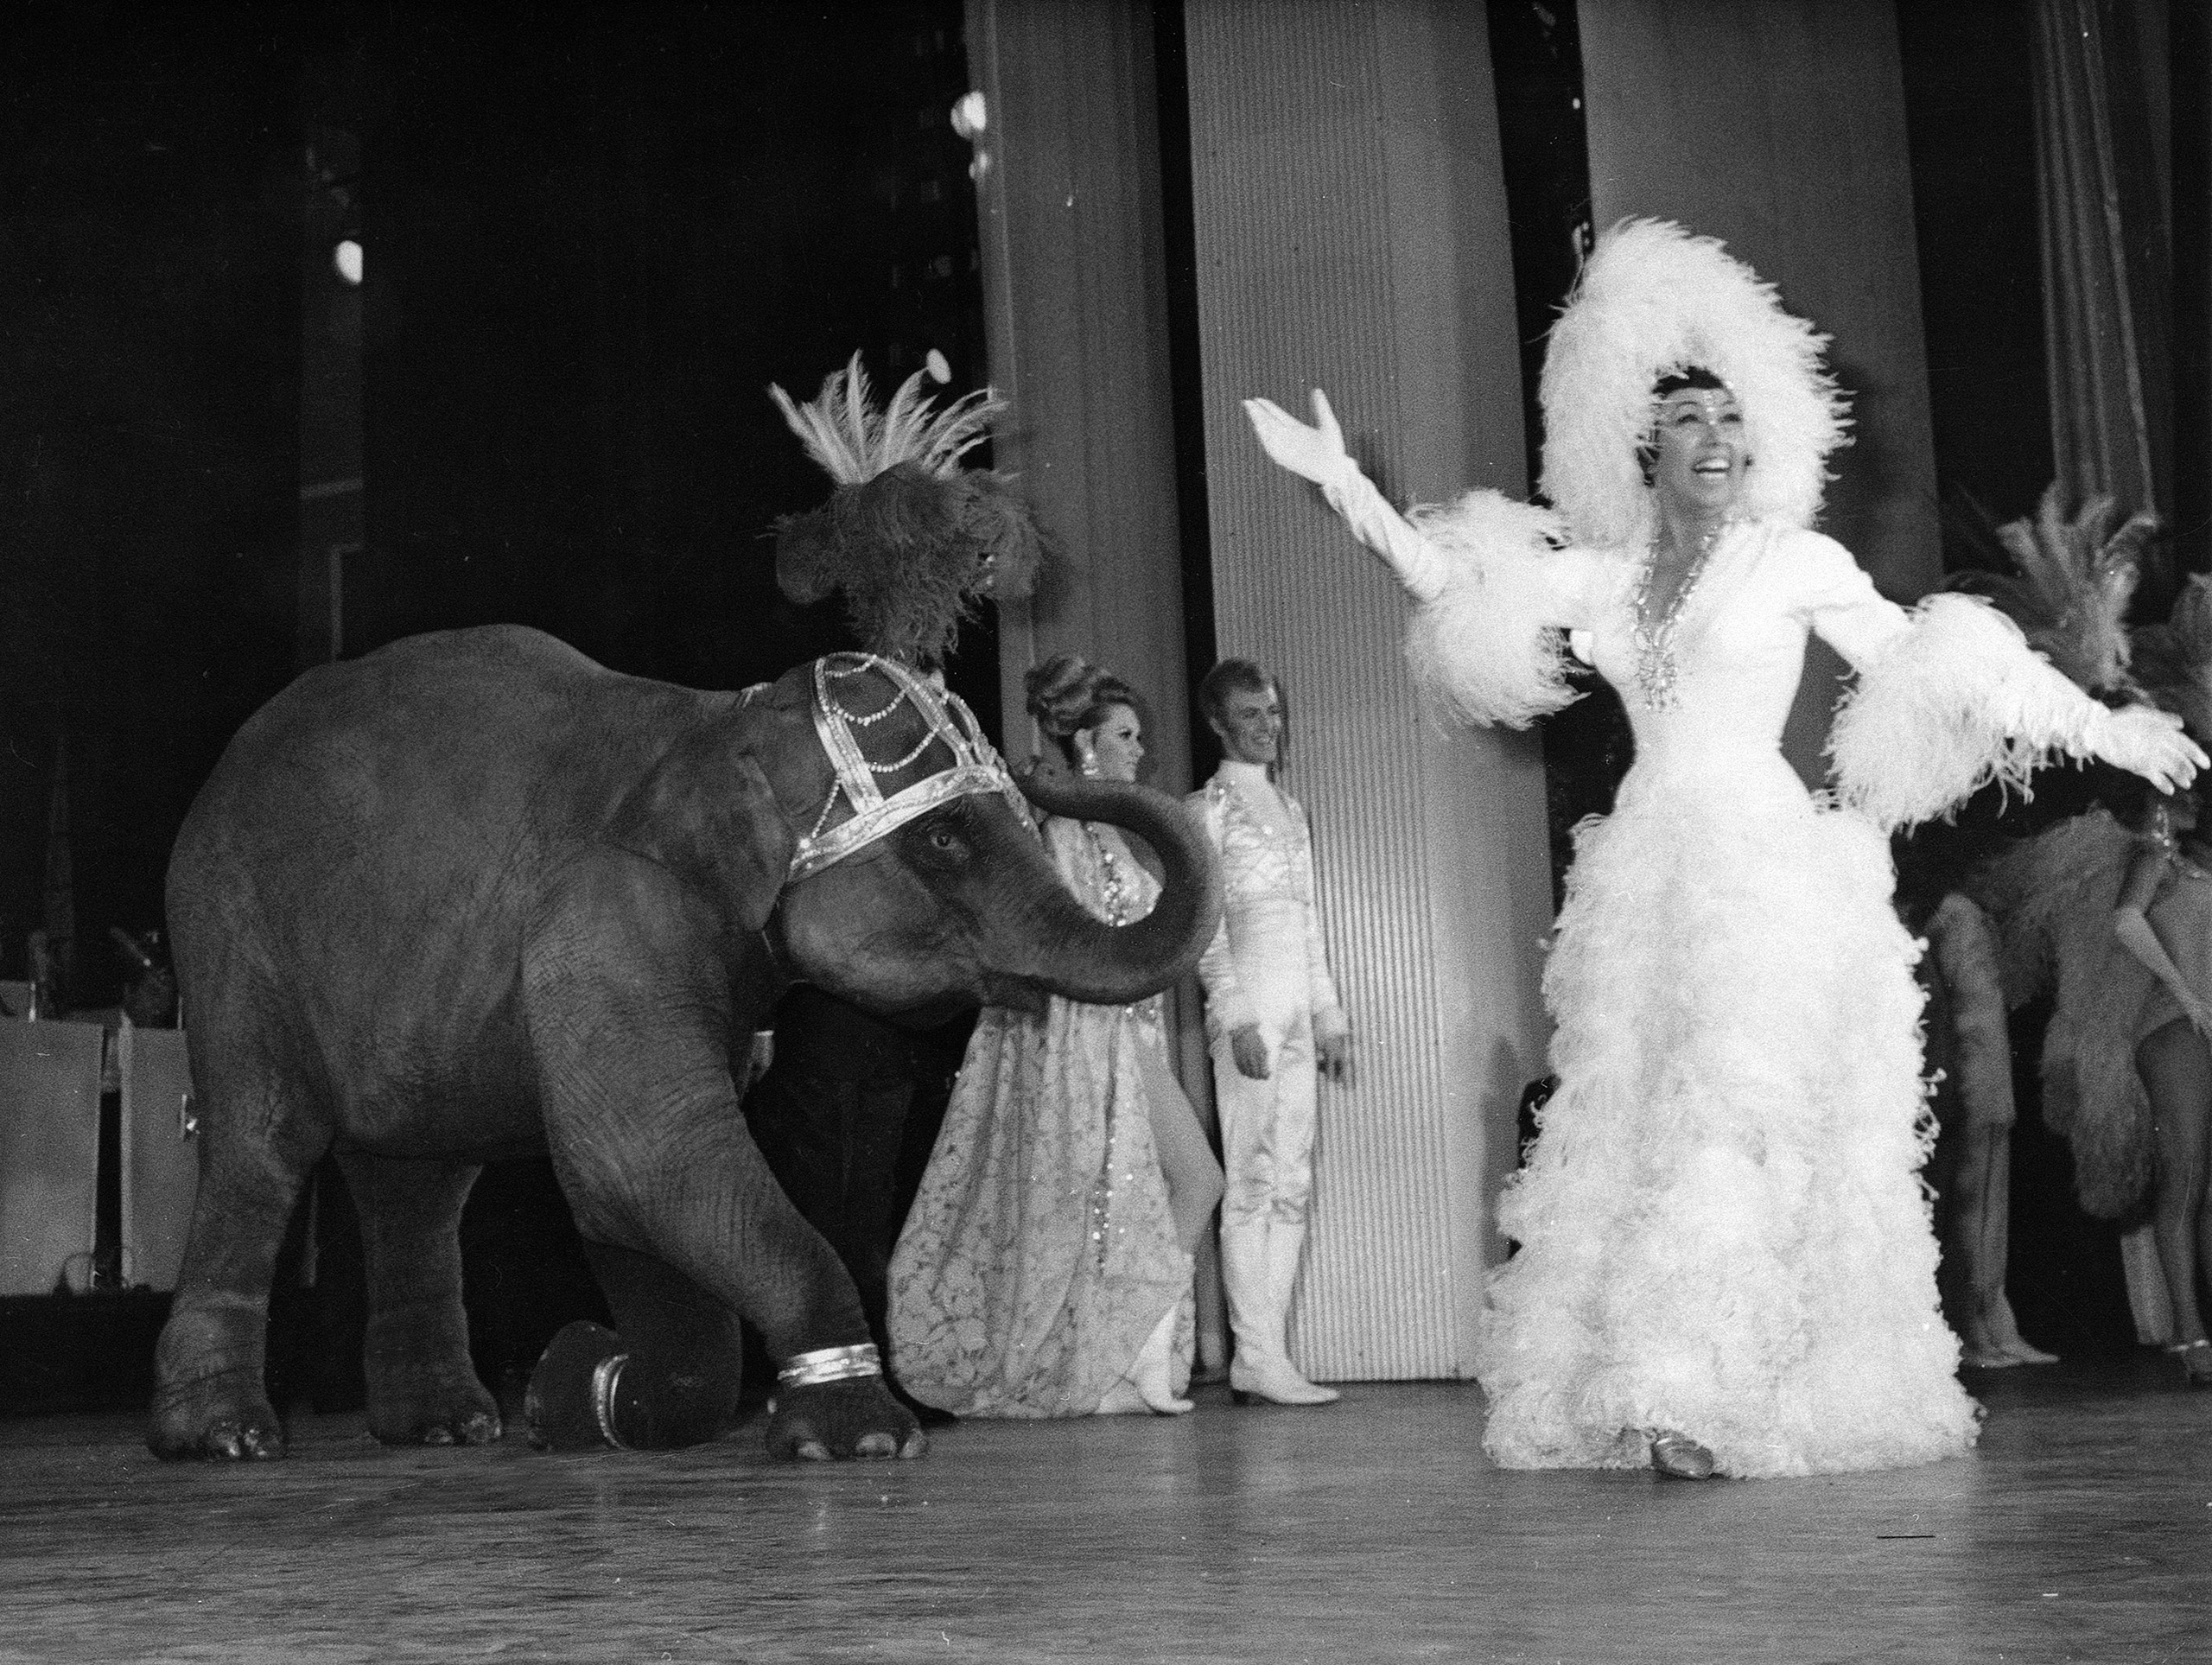 Josephine Baker appears with a young elephant on stage during her gala premiere at the Olympia Theatre in Paris, April 4, 1968.